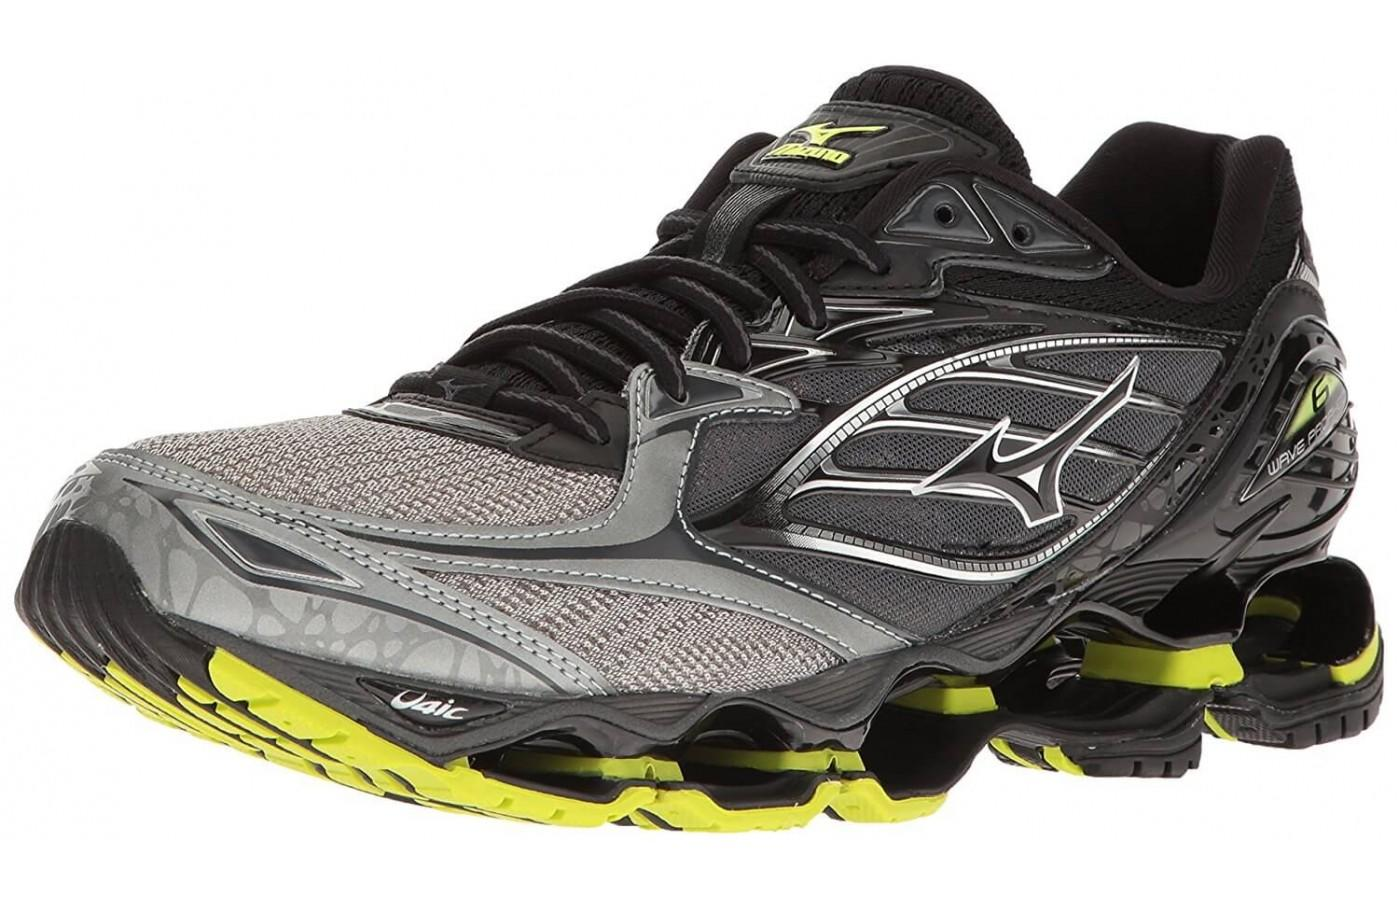 67c1427374ec Runners love the unique style and design of the Mizuno Wave Prophecy 6 Nova  ...